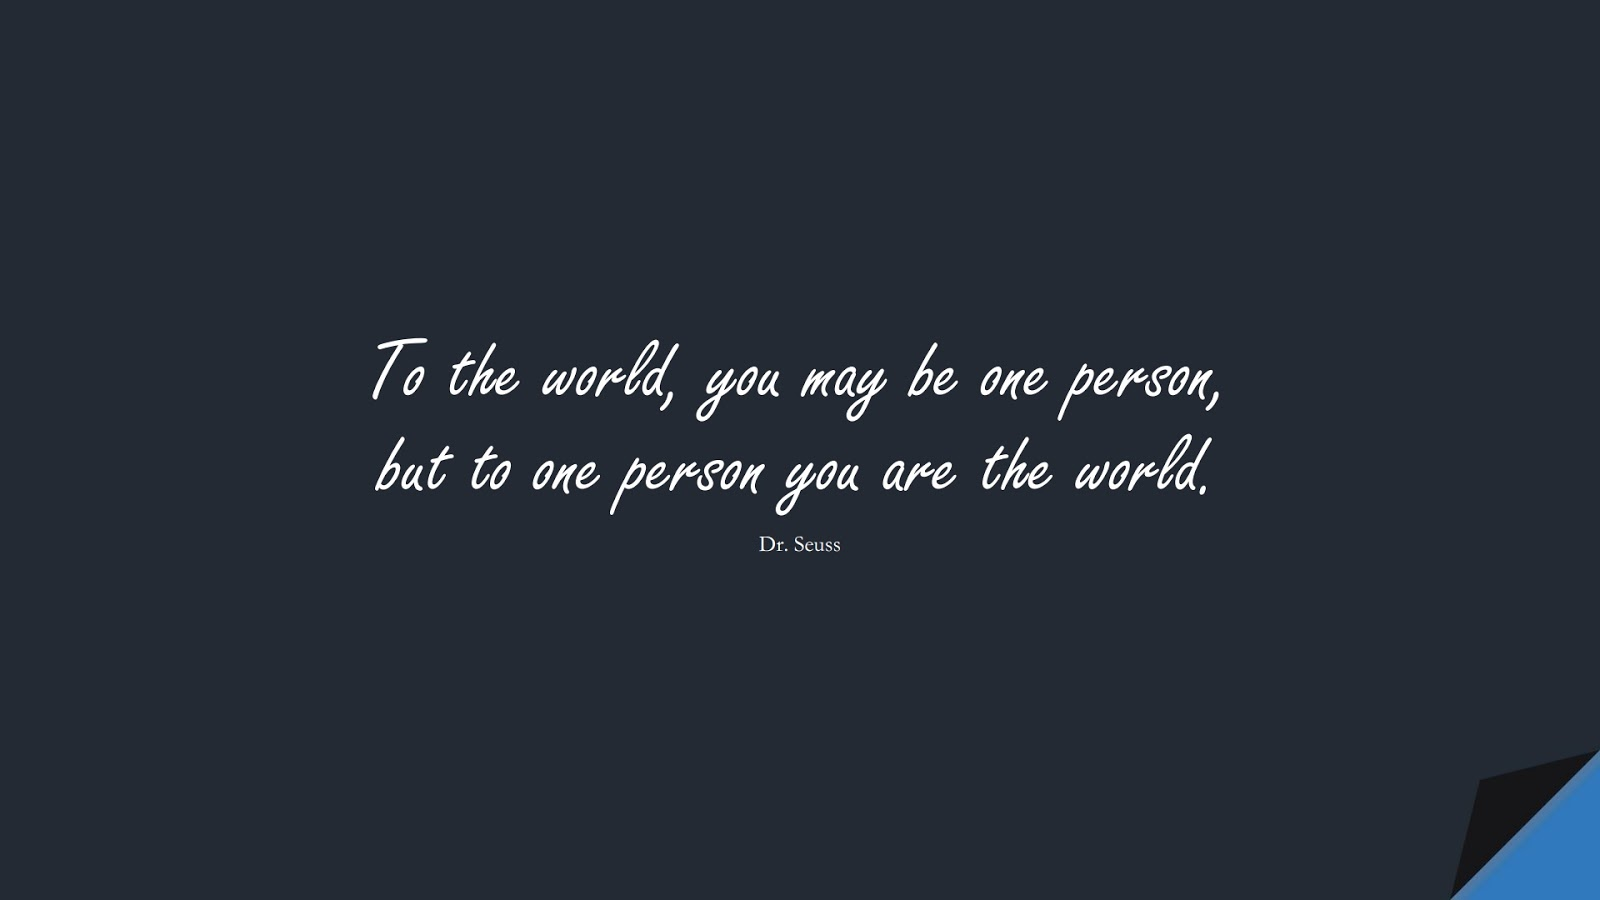 To the world, you may be one person, but to one person you are the world. (Dr. Seuss);  #LoveQuotes